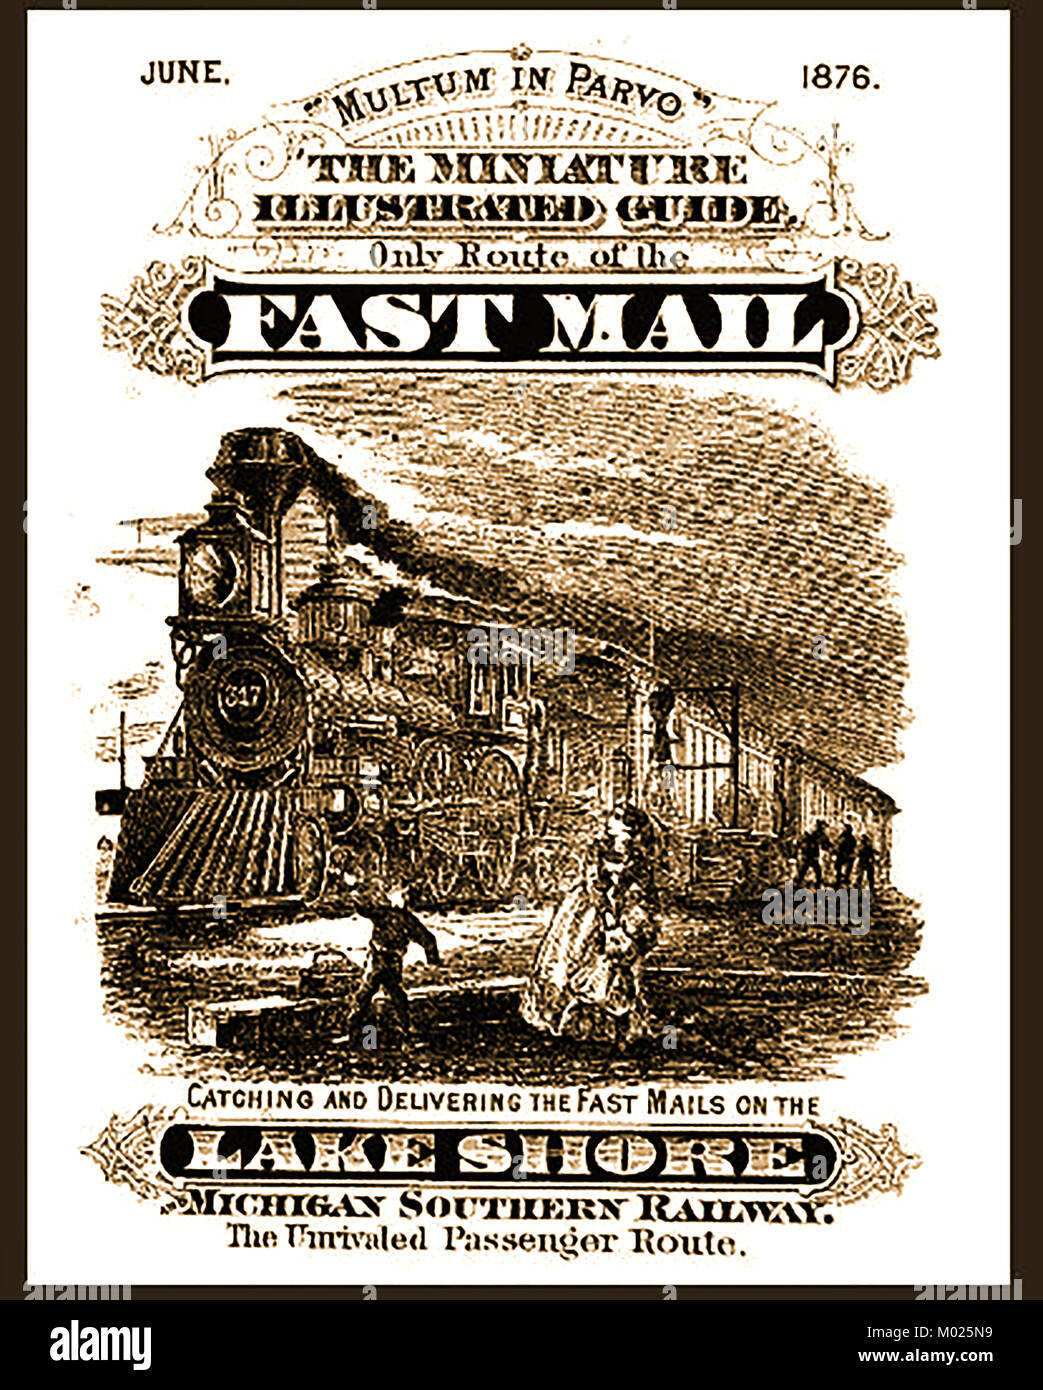 Lake Shore and Michigan Southern Railway 1876  - MICHIGAN SOUTHERN RAILWAY - Fast Mail  train and track-side Mail - Stock Image